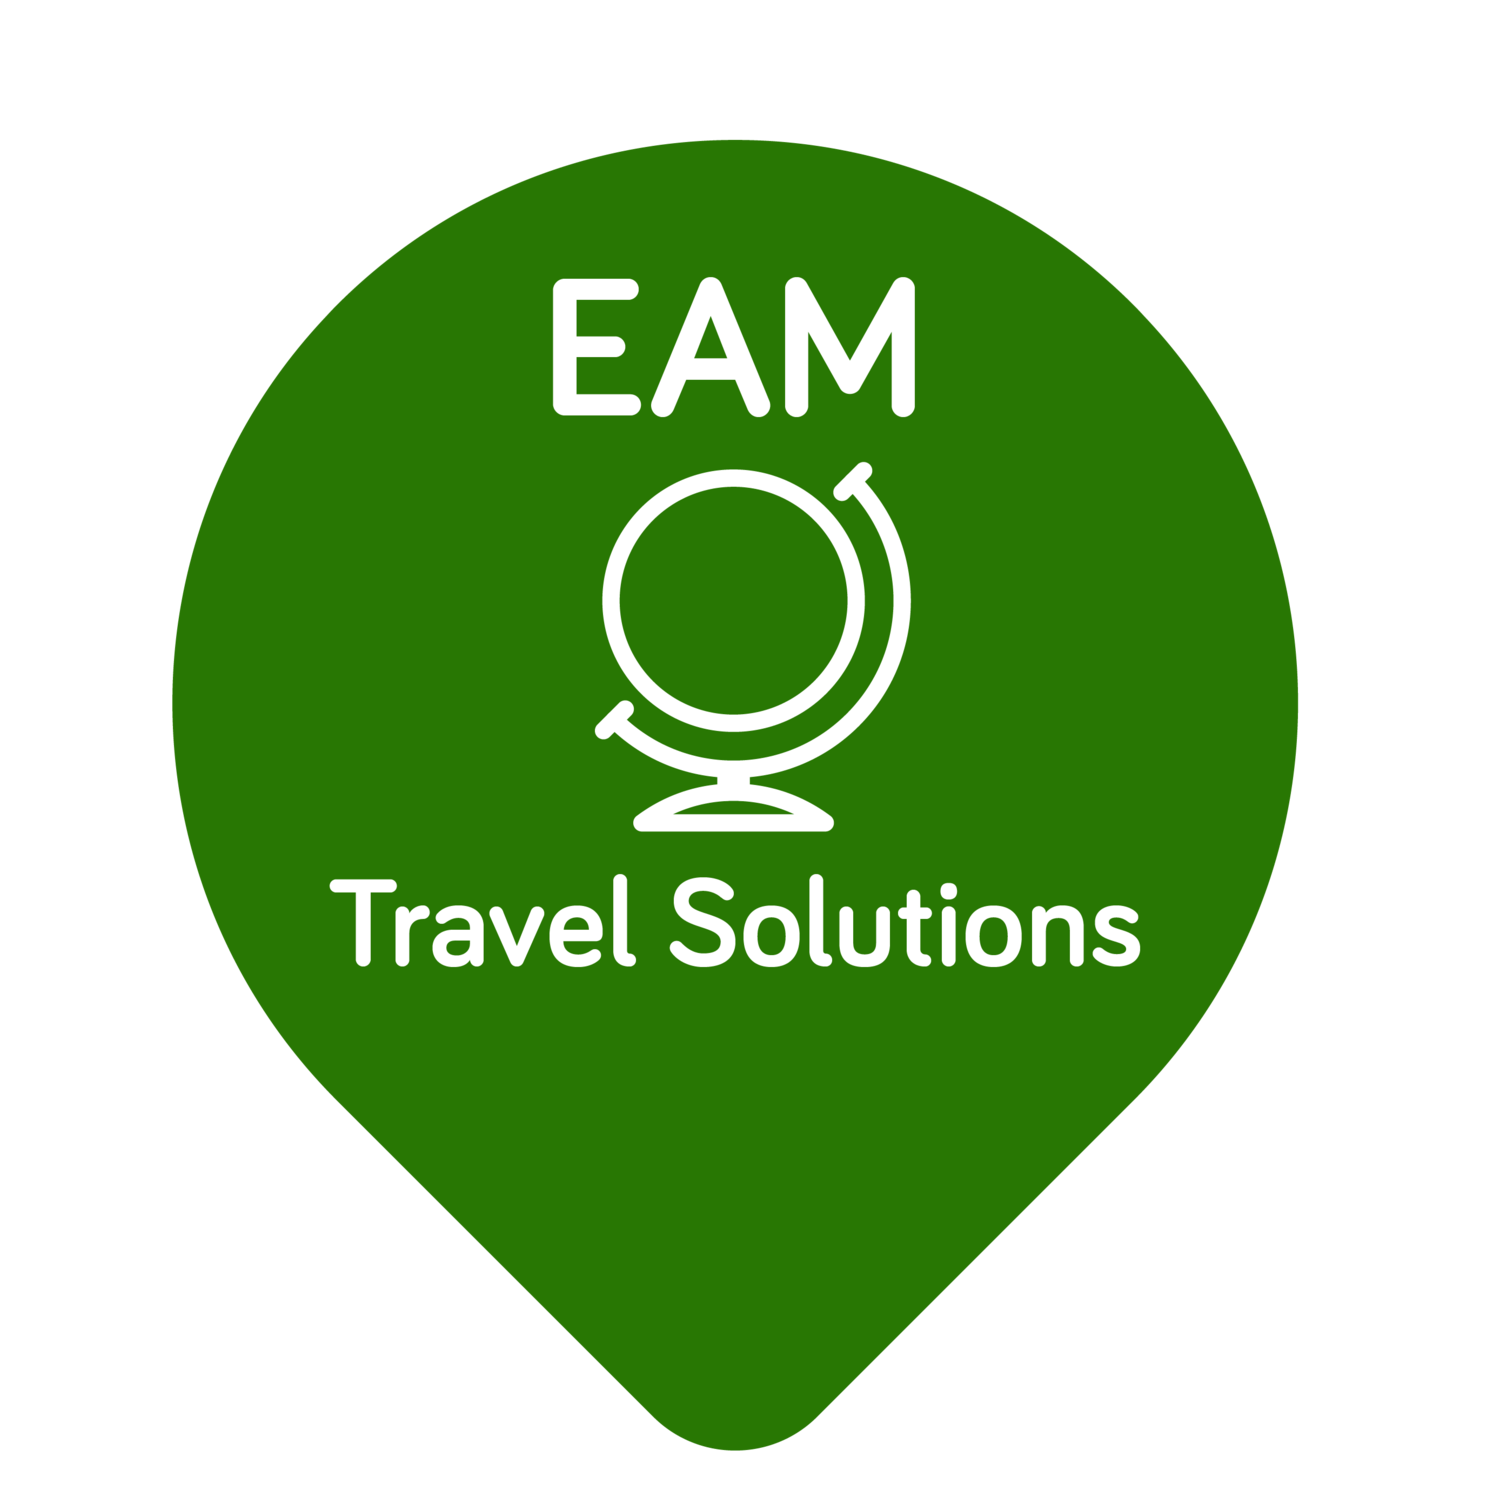 EAM Travel Solutions